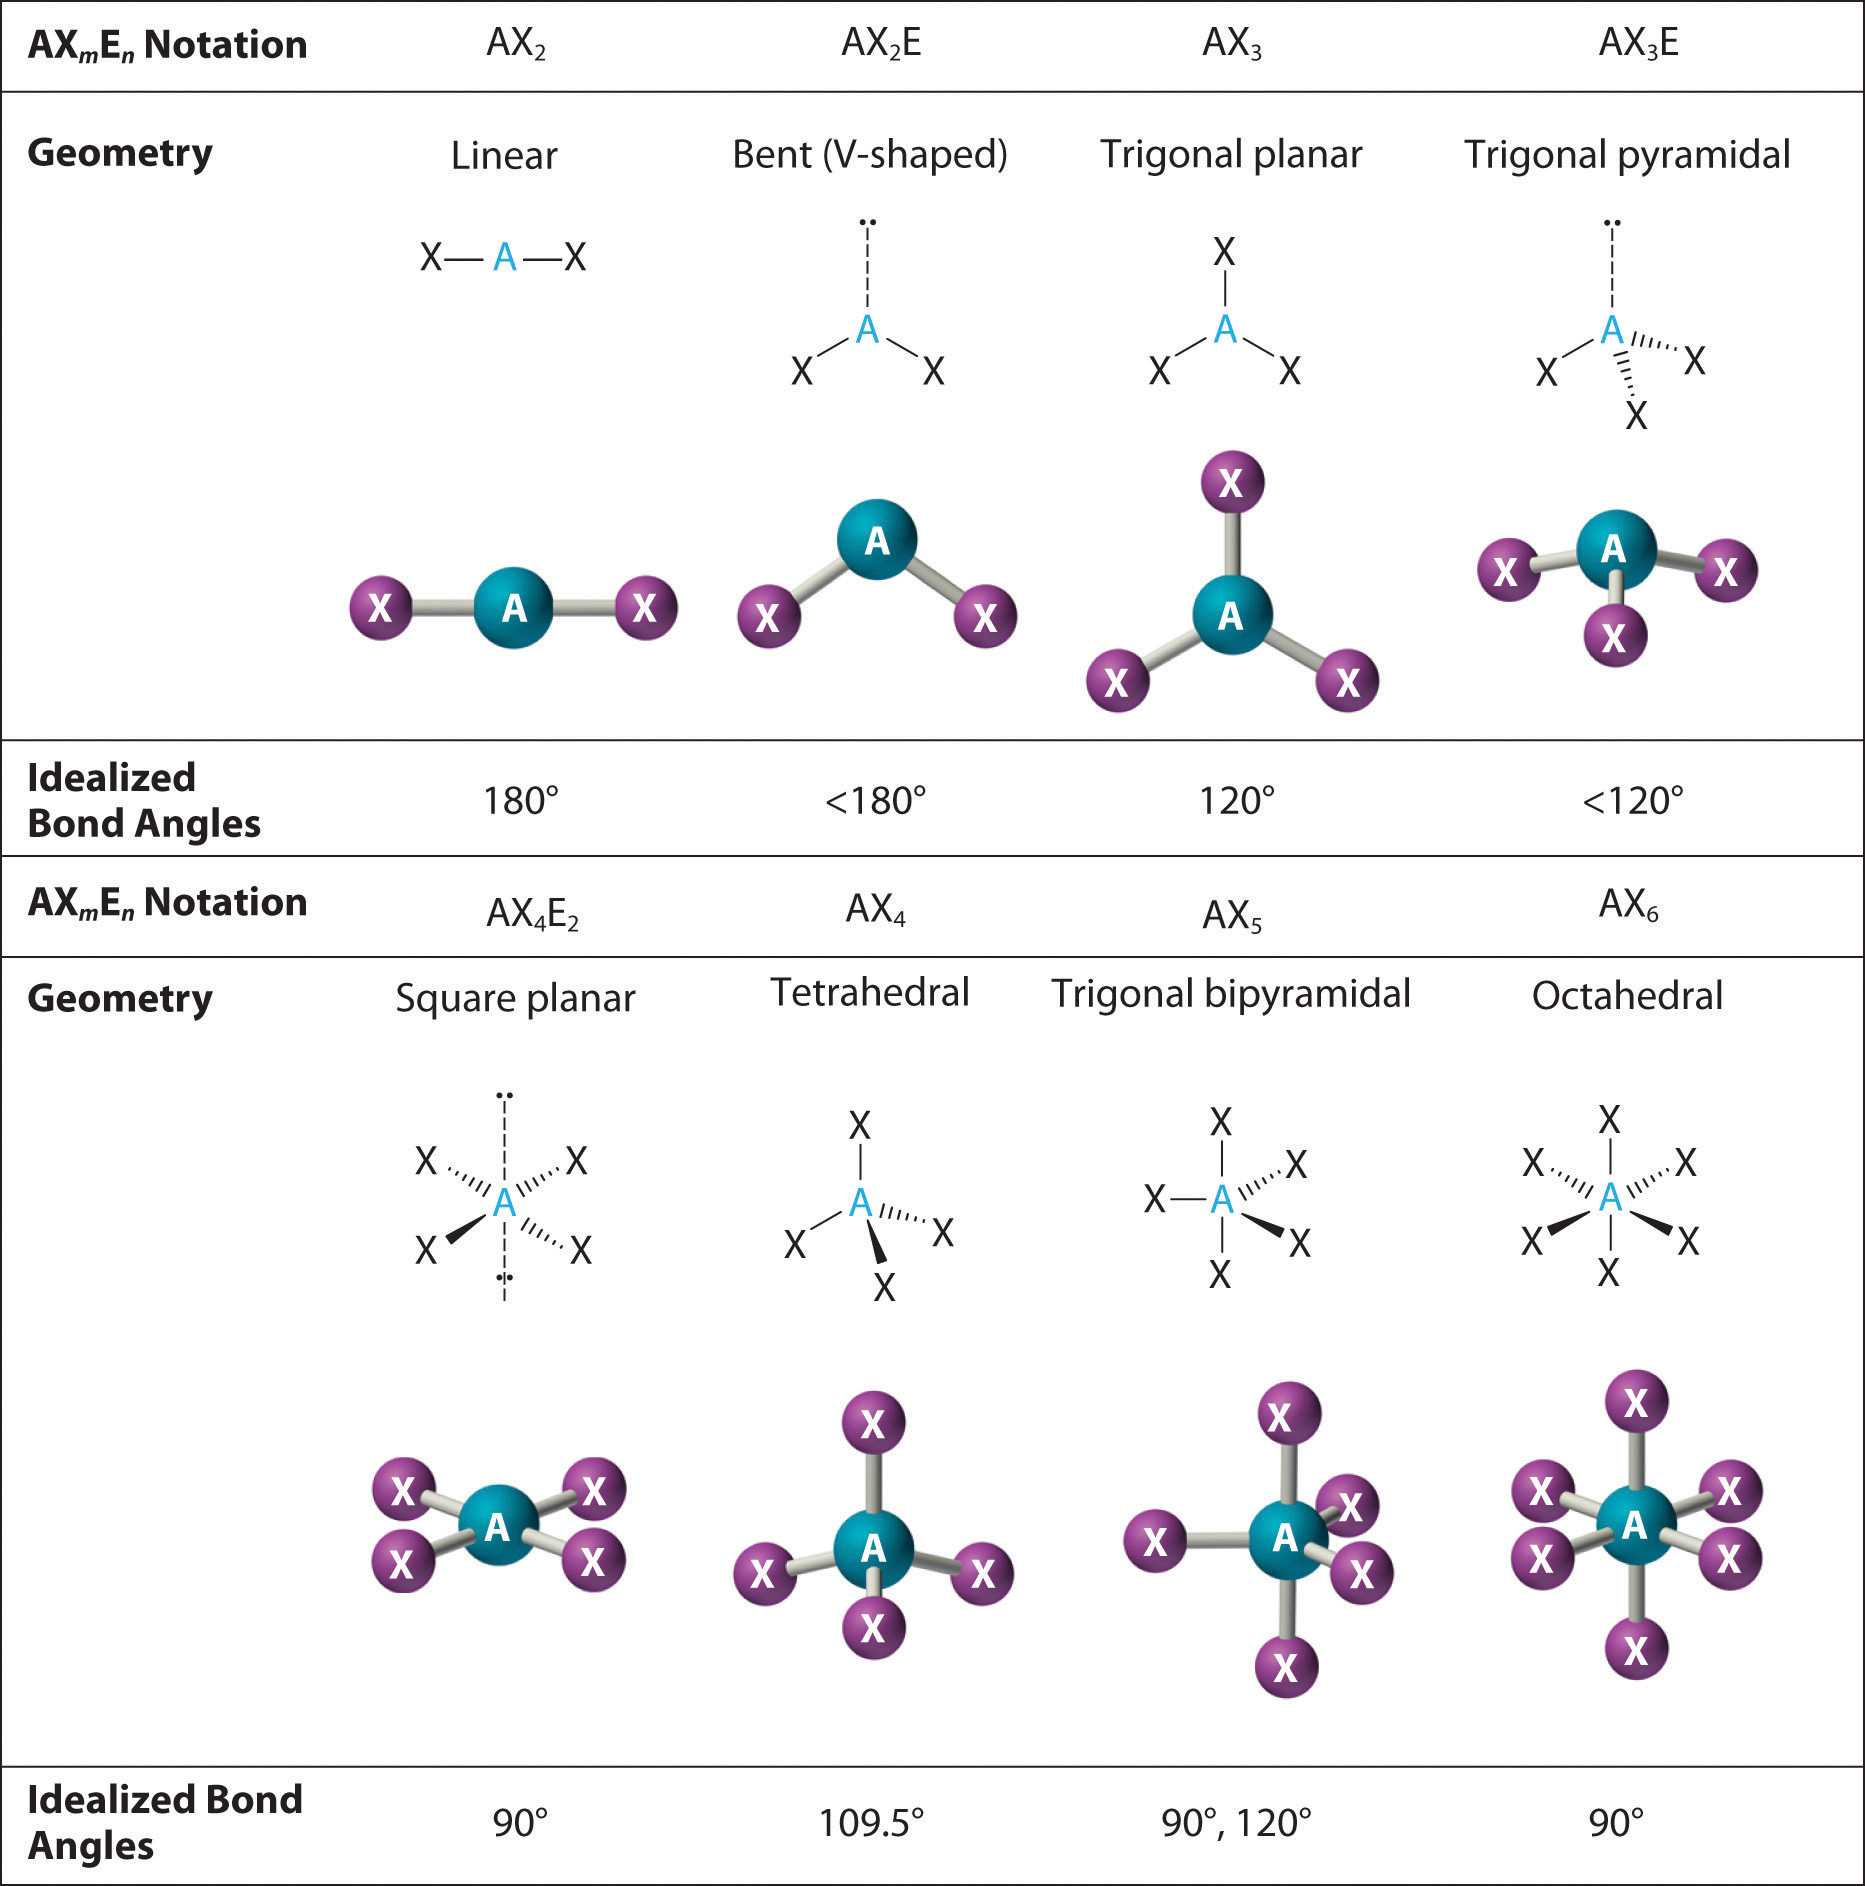 Worksheet Chemical Bonding Ionic and Covalent with Chapter 6 3 Vsepr Molecular Geometry Chemwiki